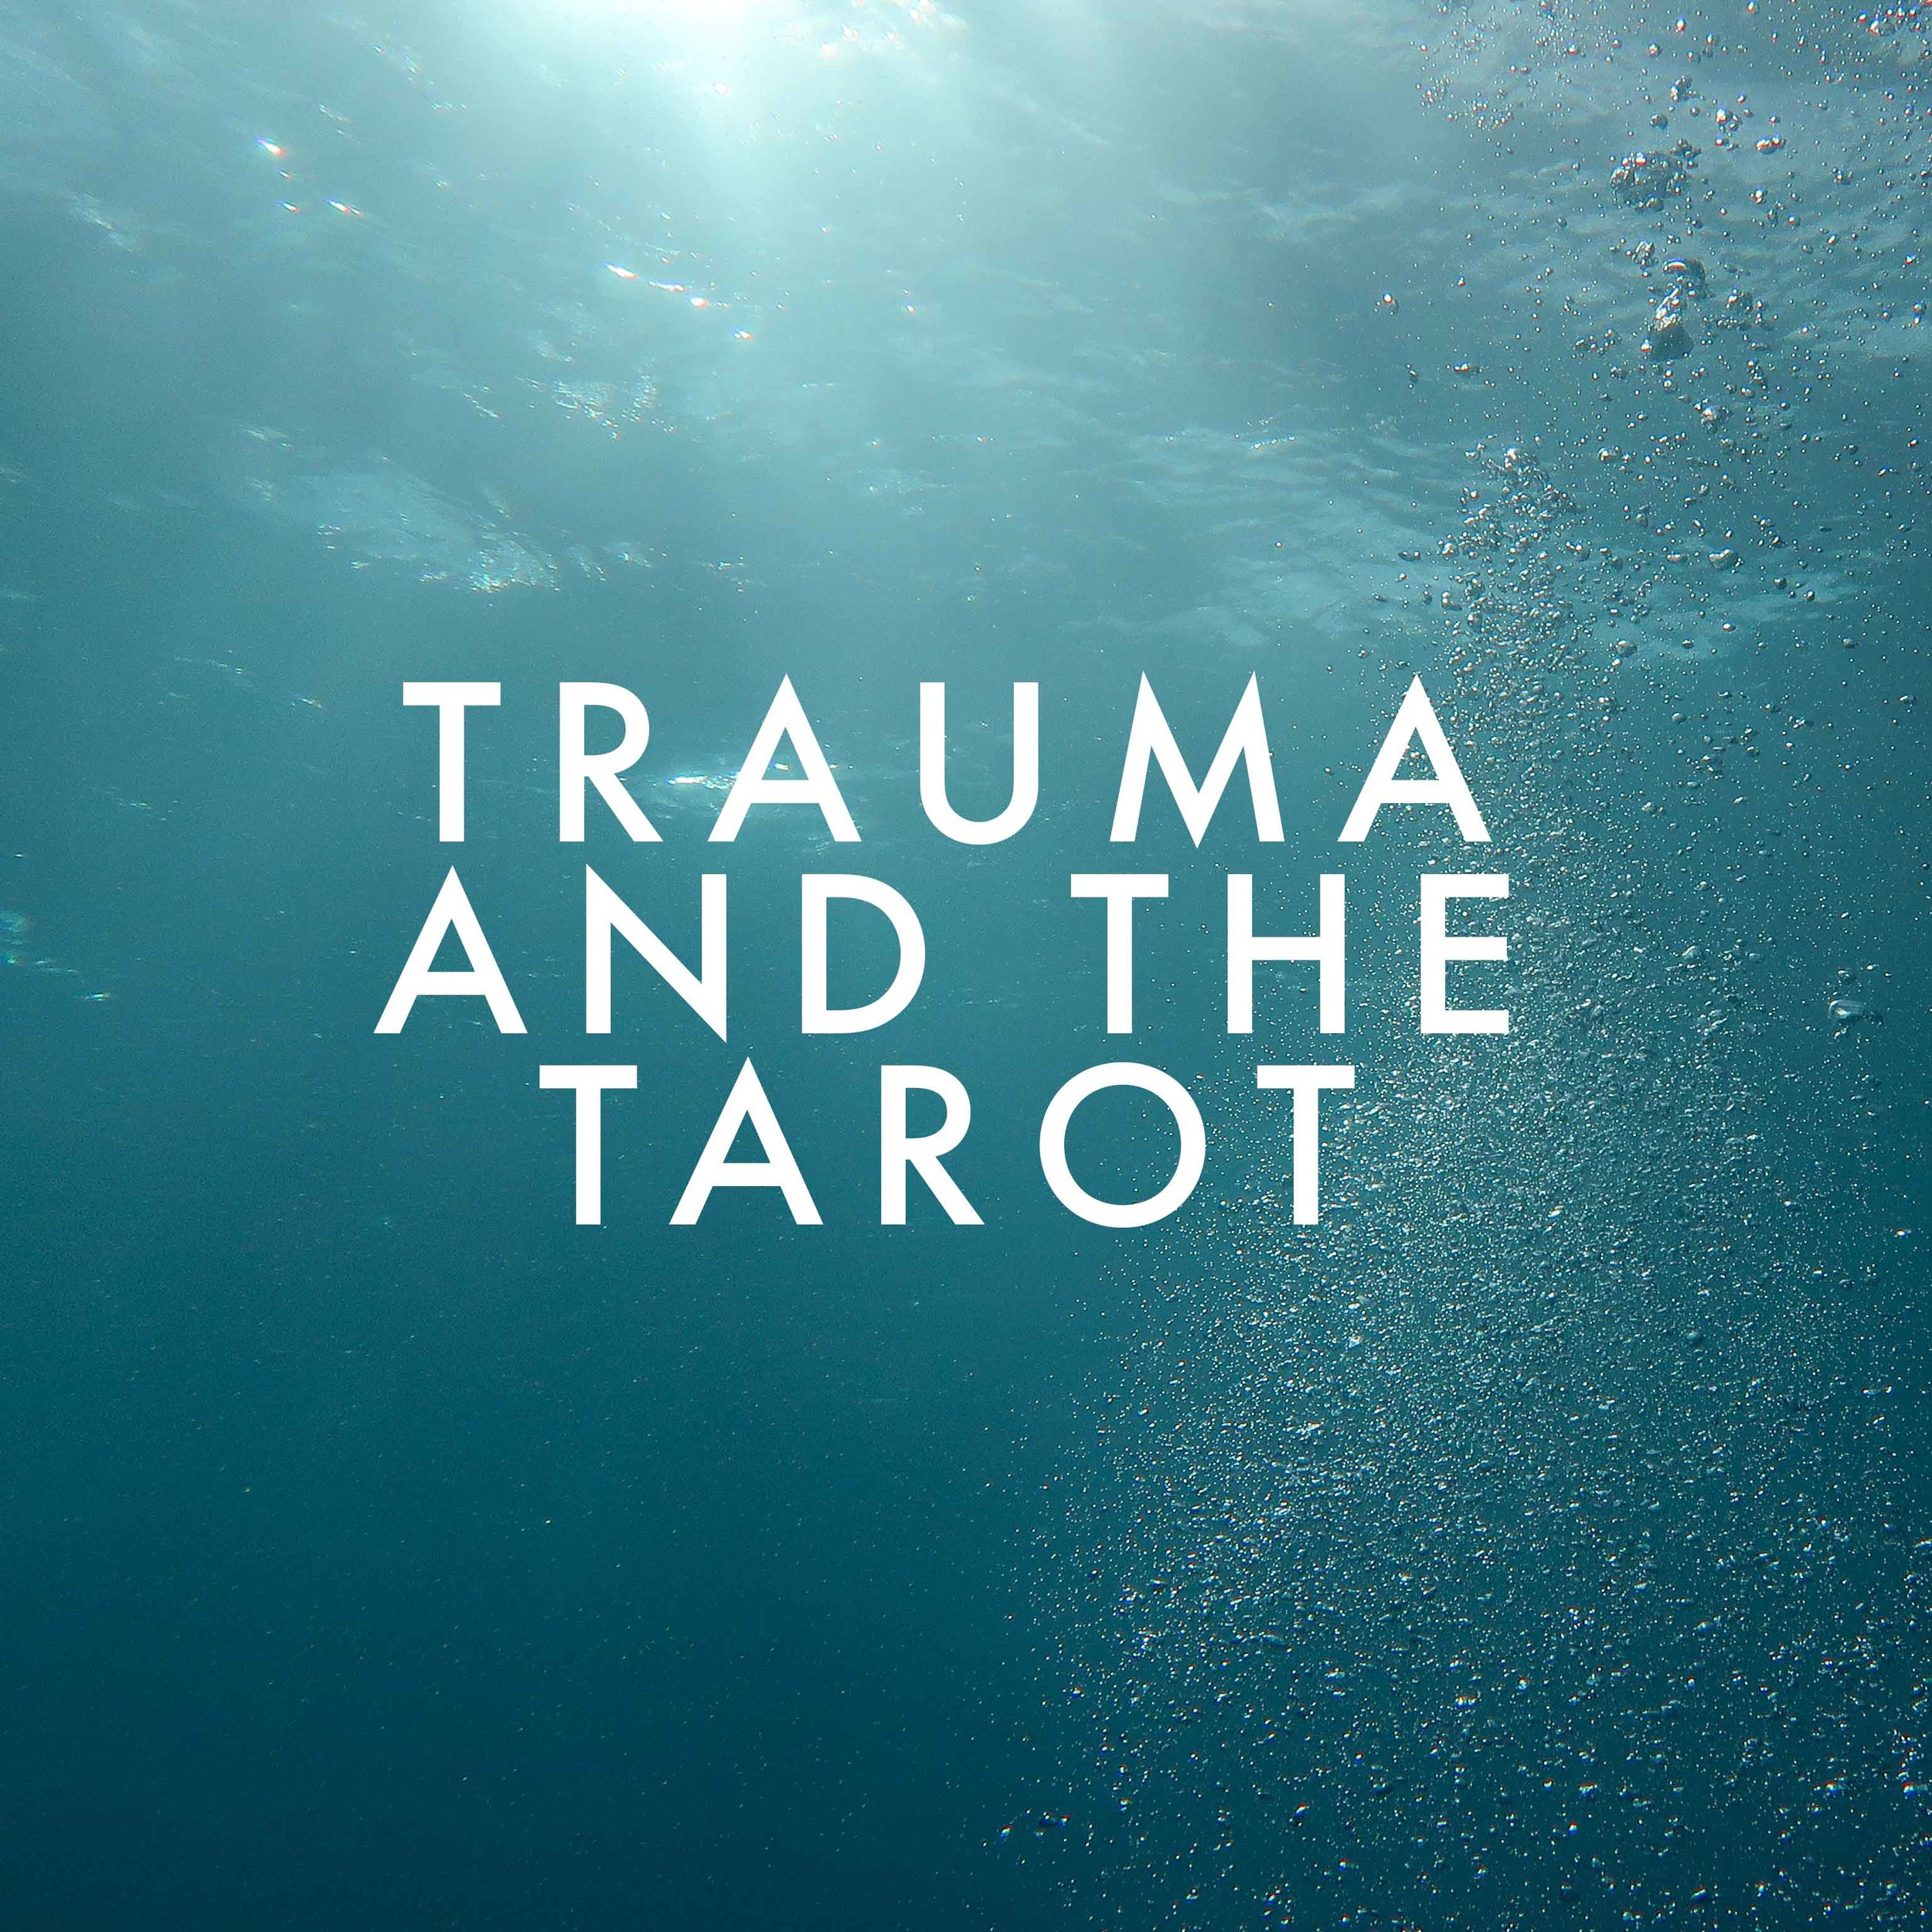 trauma and tarot.jpg